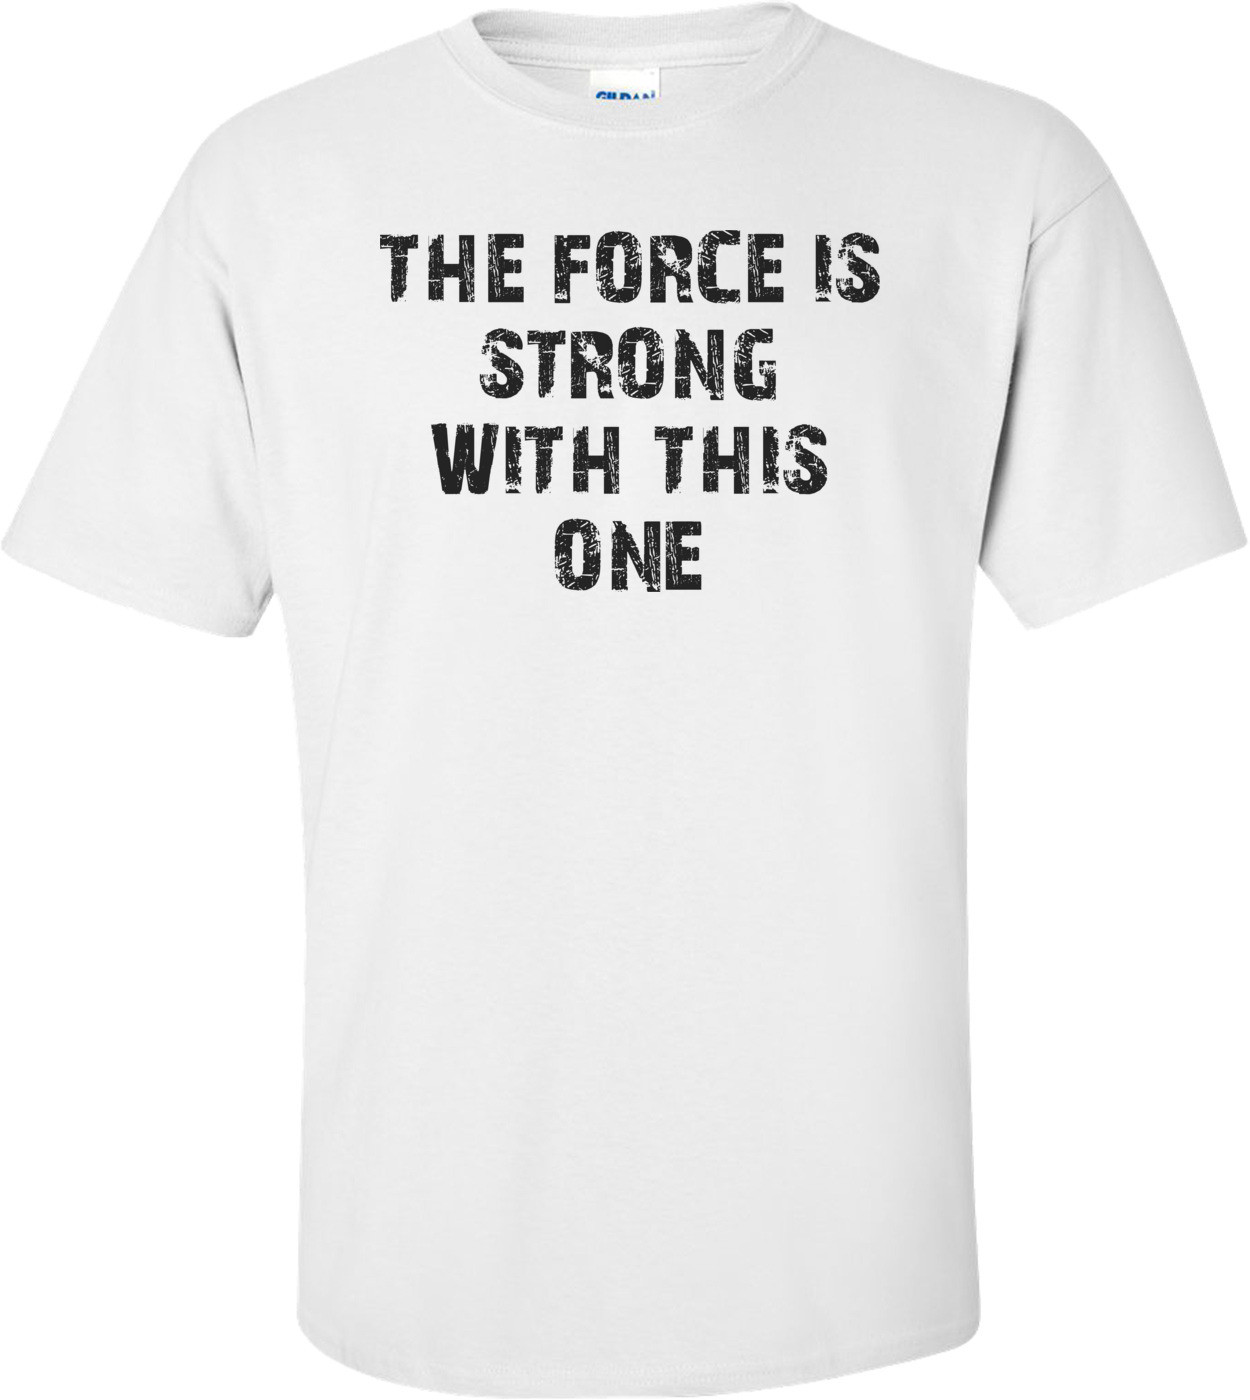 THE FORCE IS STRONG WITH THIS ONE Shirt